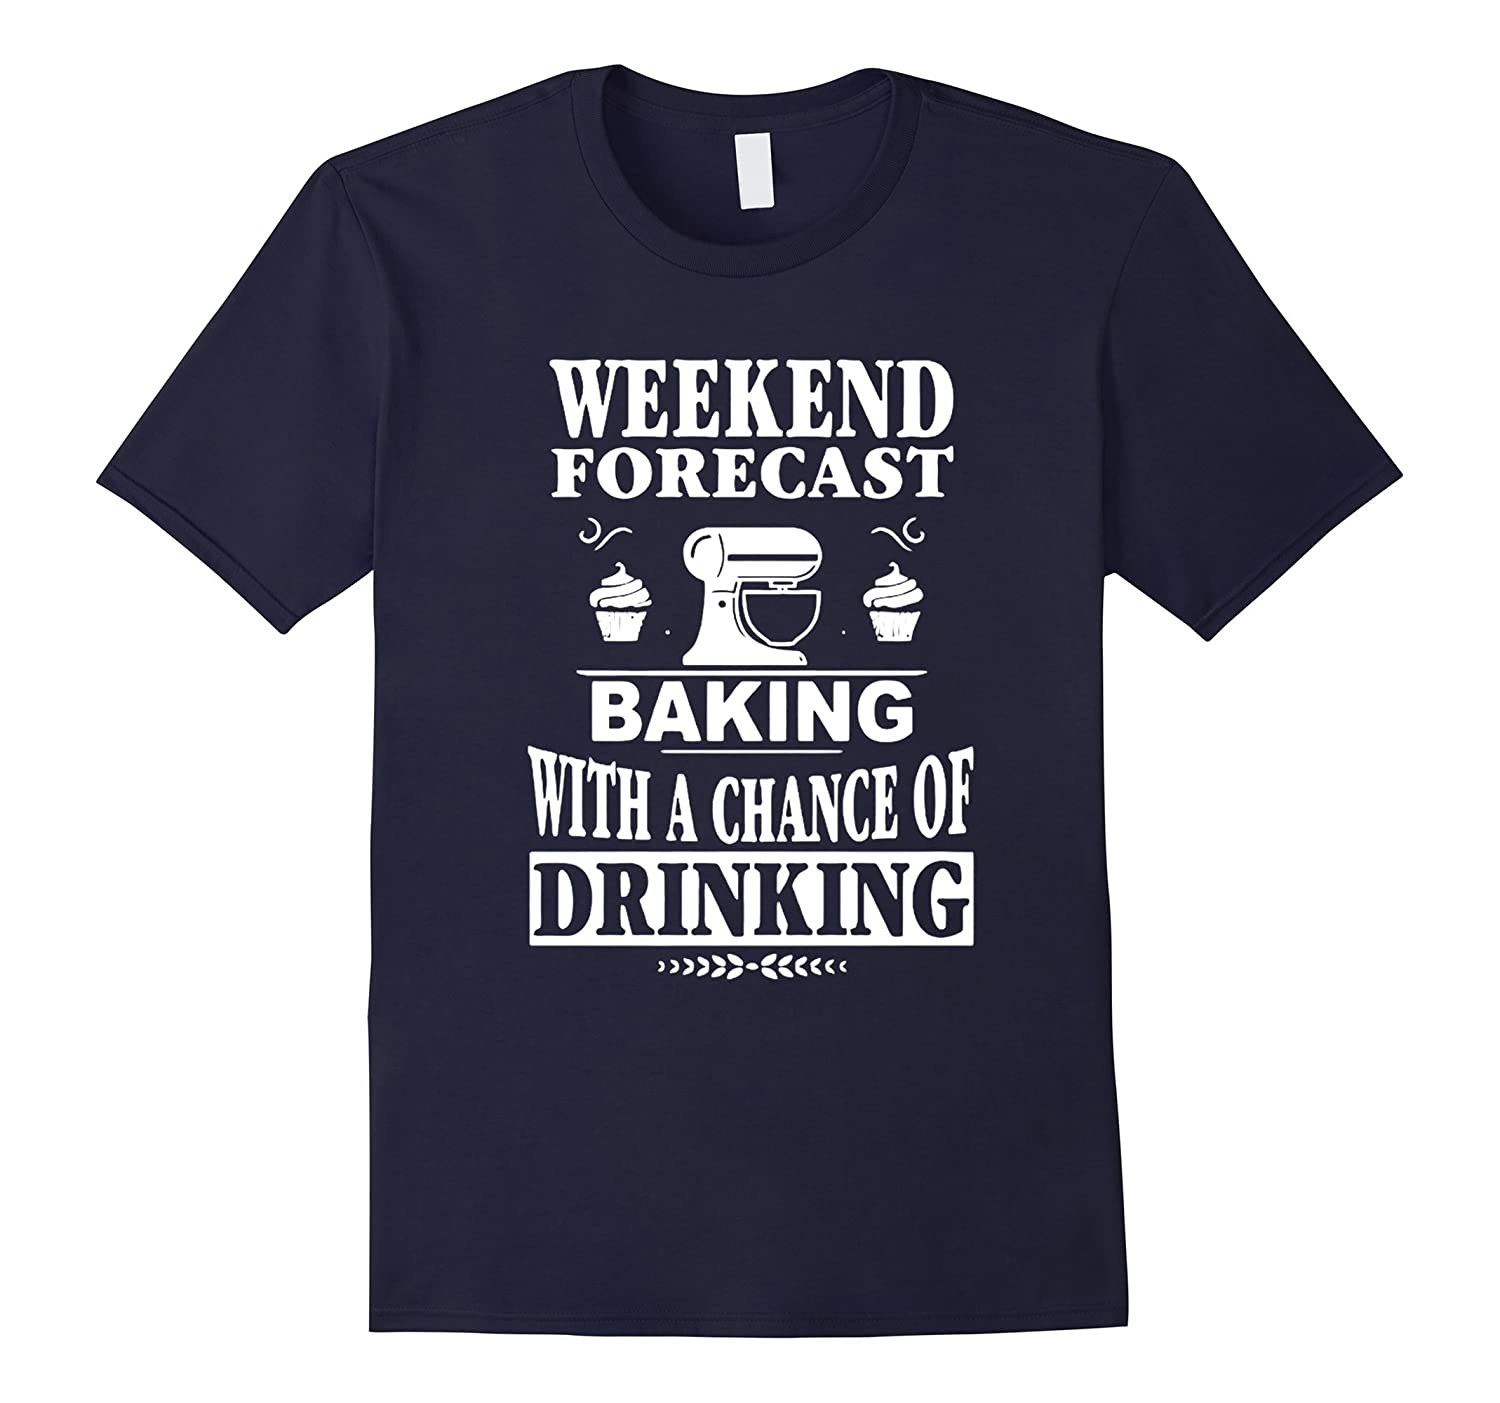 Weekend Forecast Baking With a Chance of Drinking Shirt-CL